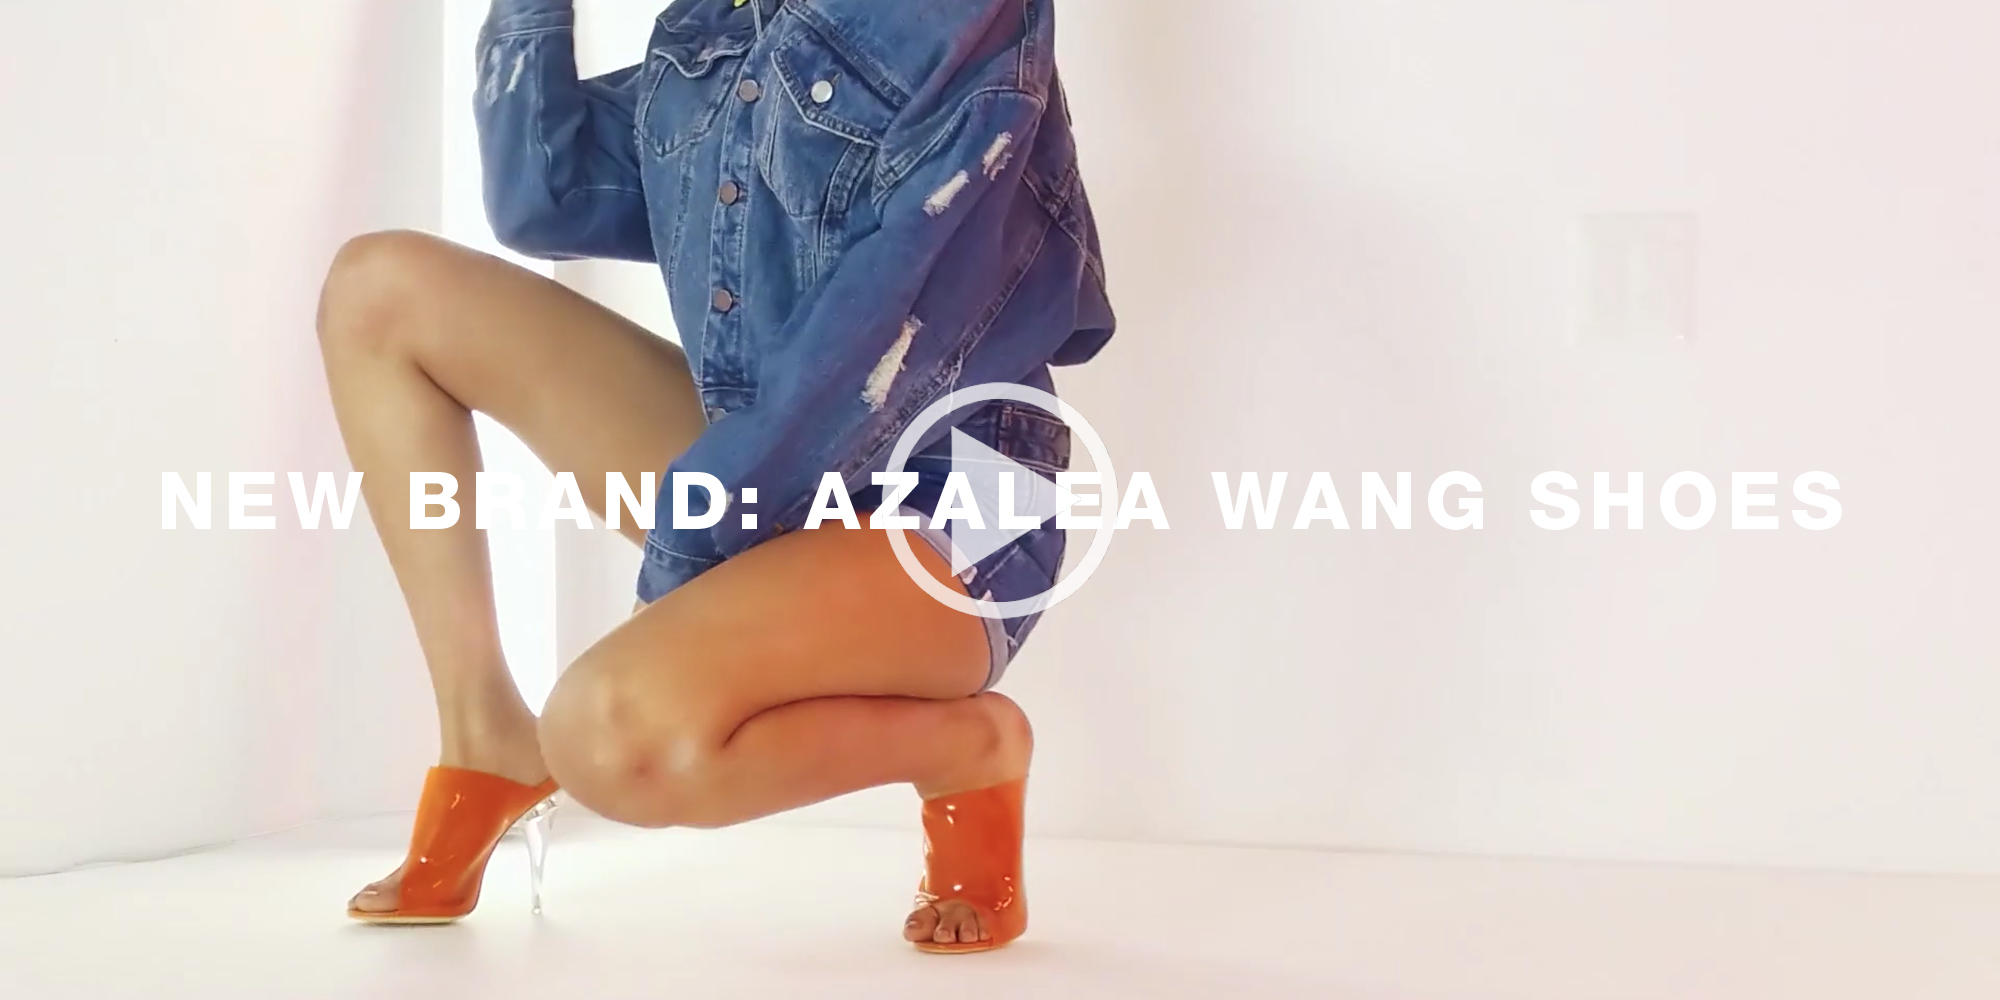 New Brand: Azalea Wang Shoes